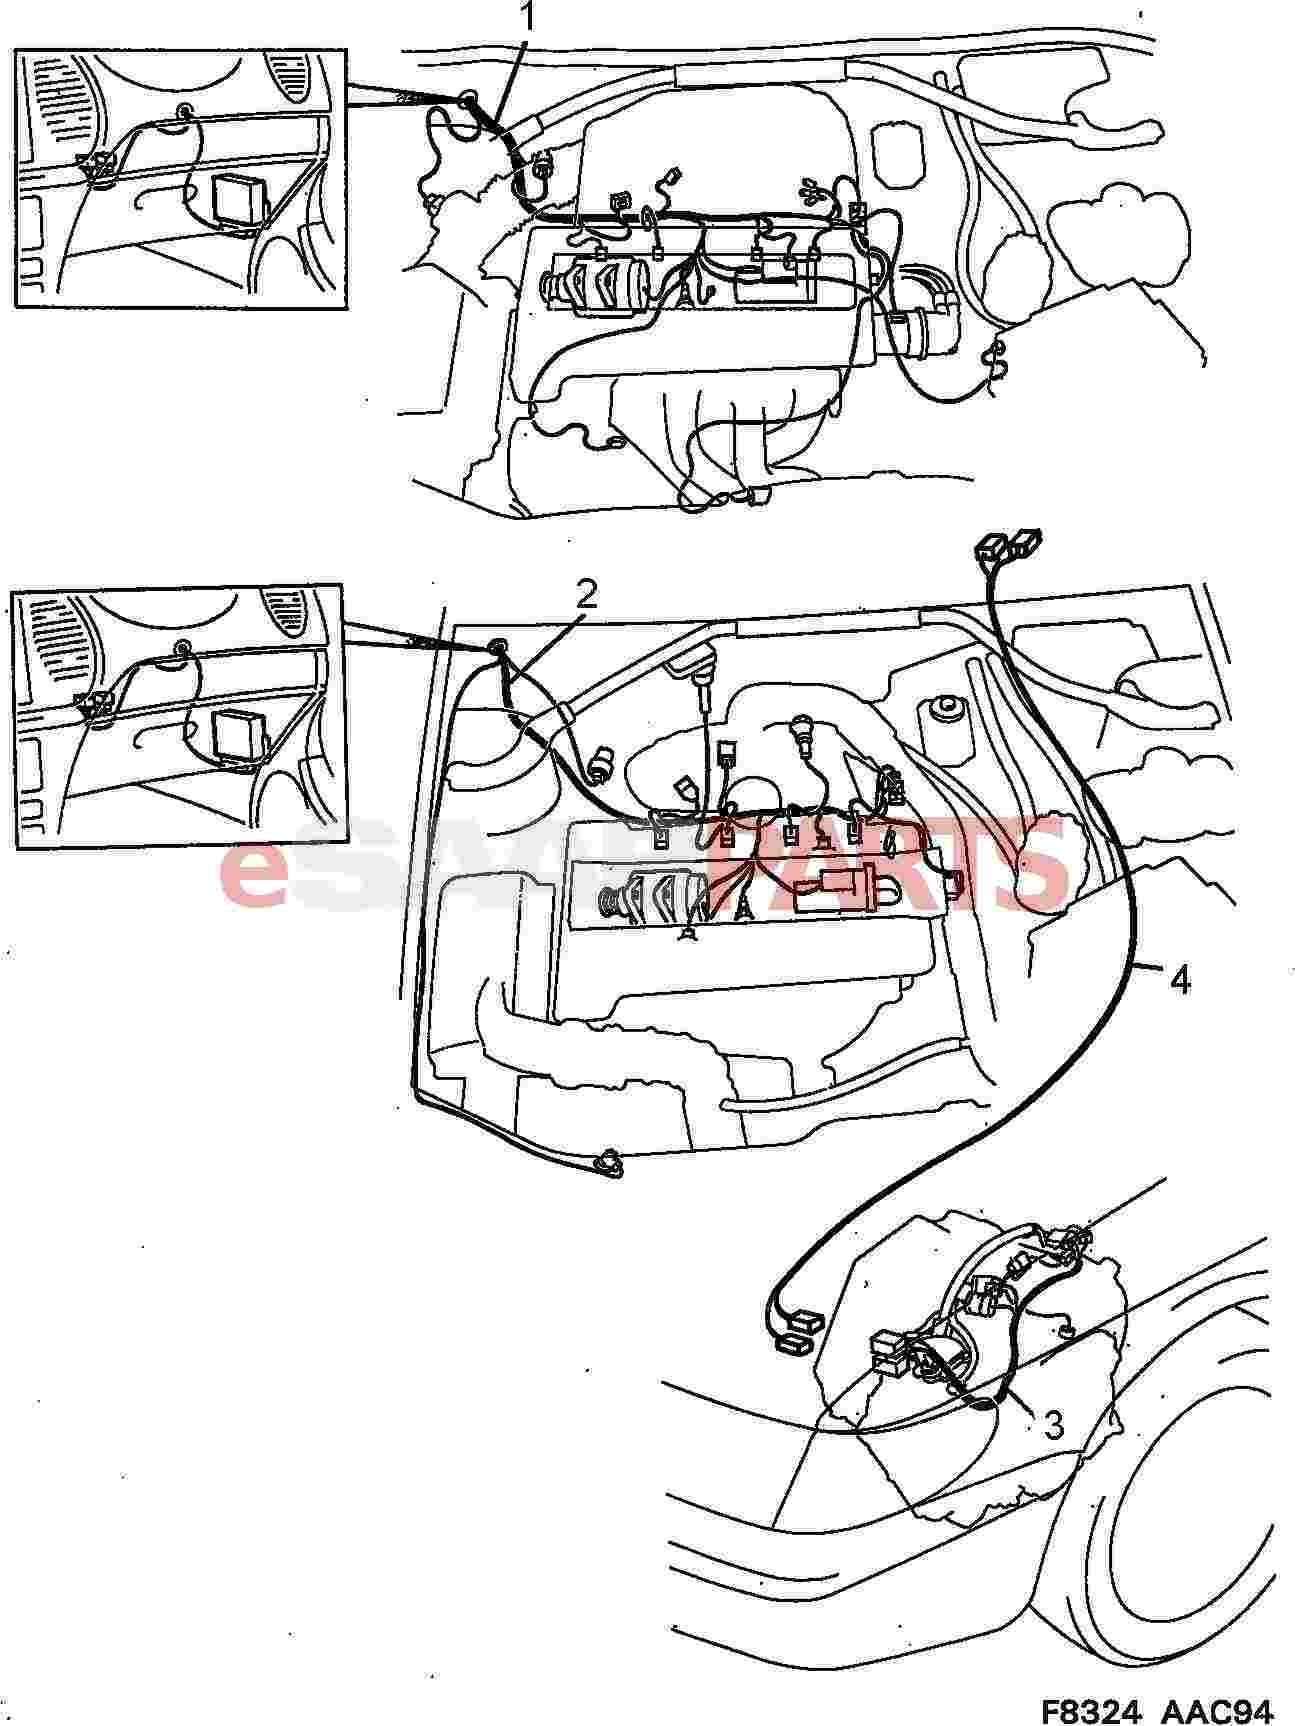 hight resolution of esaabparts com saab 900 electrical parts wiring harness motor transmission